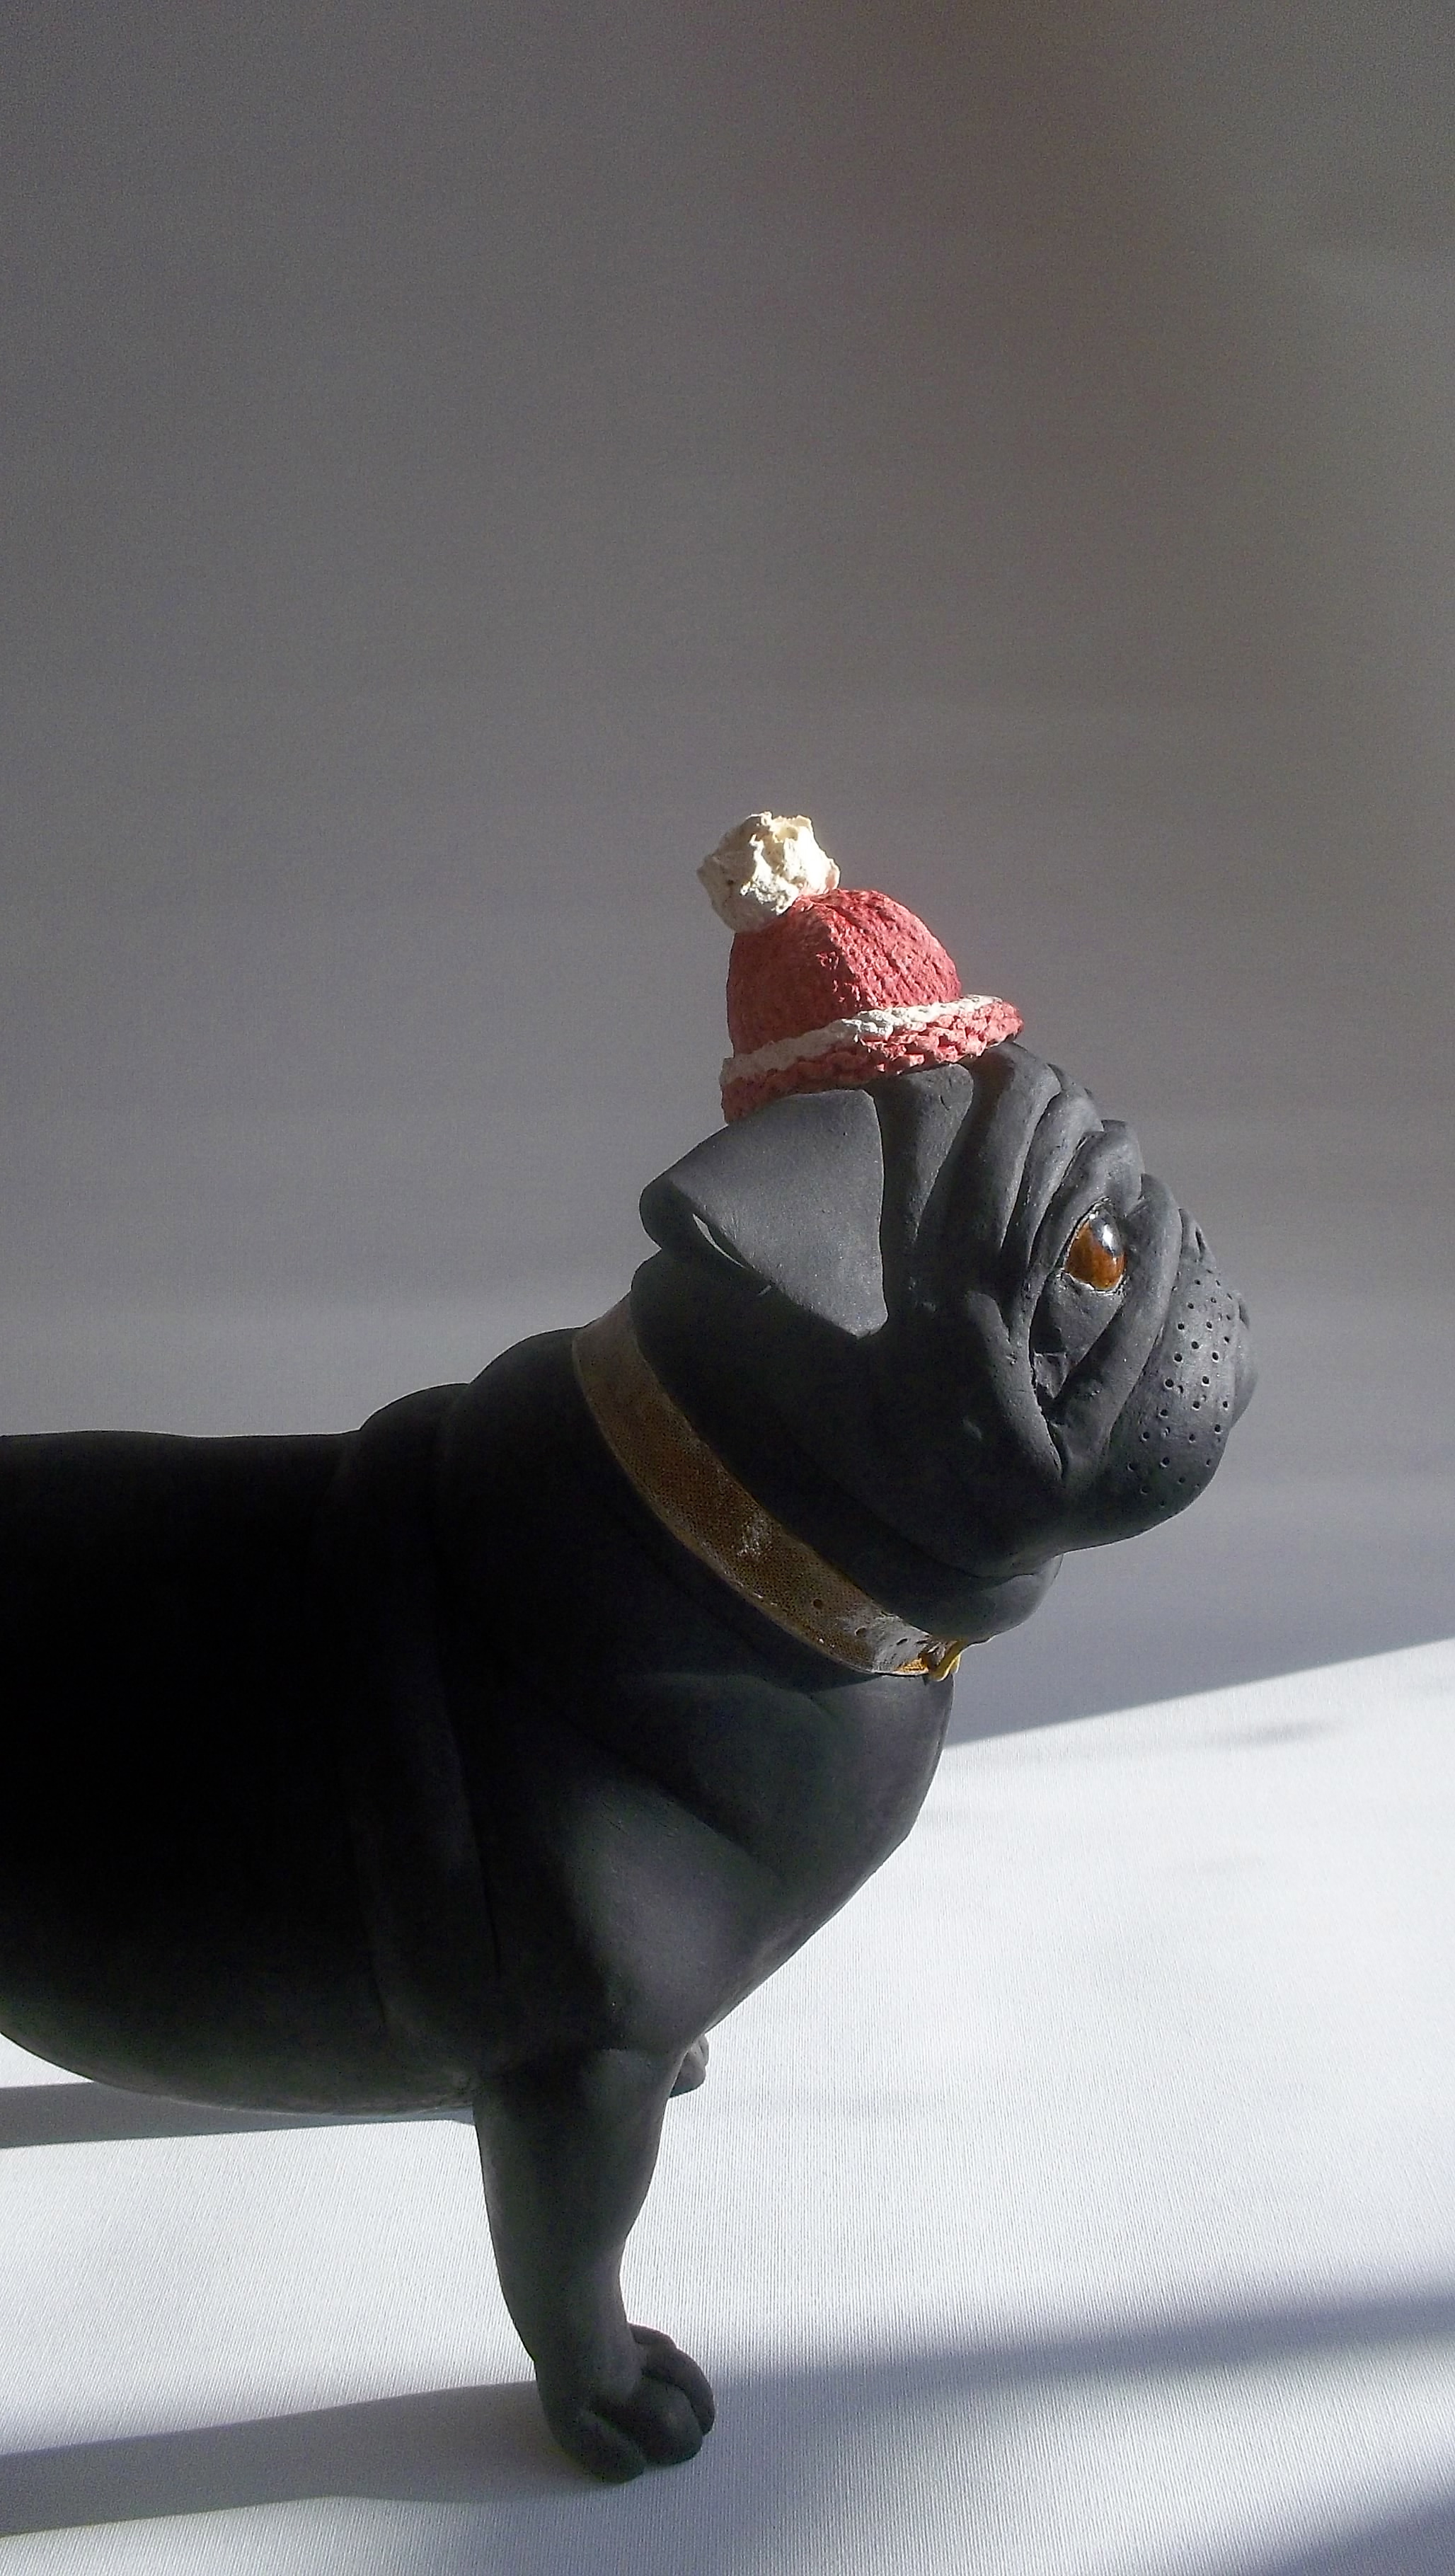 Pug with hat.